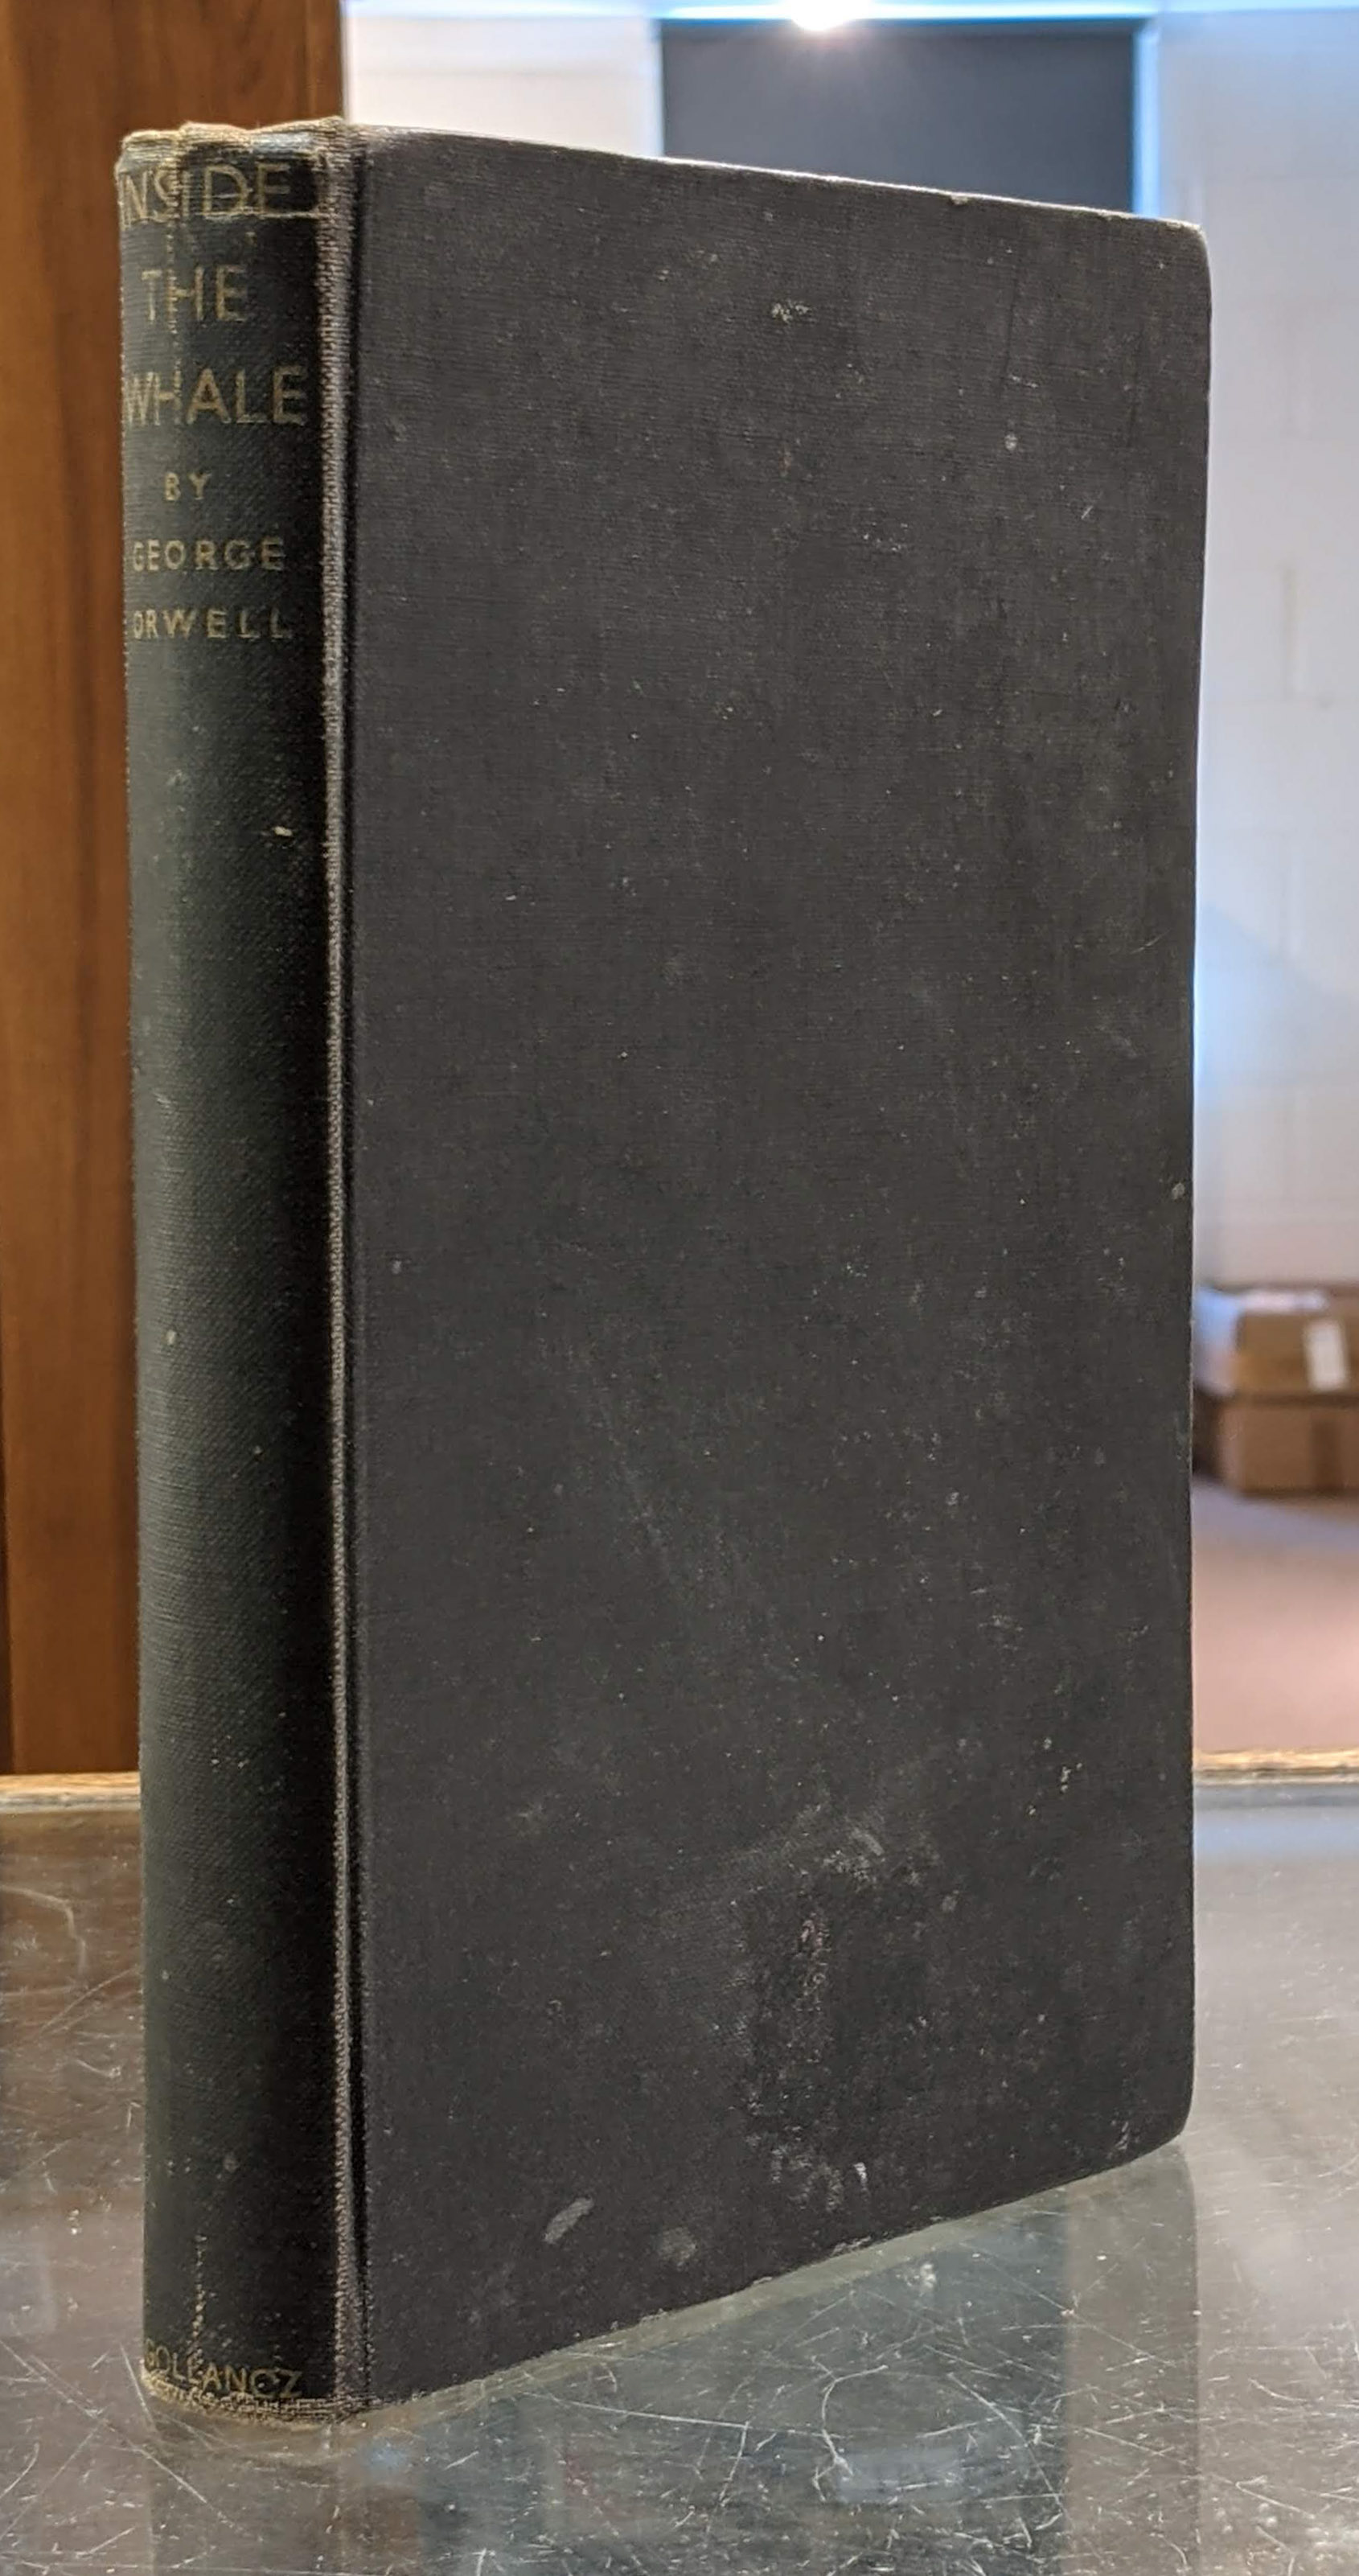 Orwell (George). Inside the Whale and other essays, 1st edition, 1940